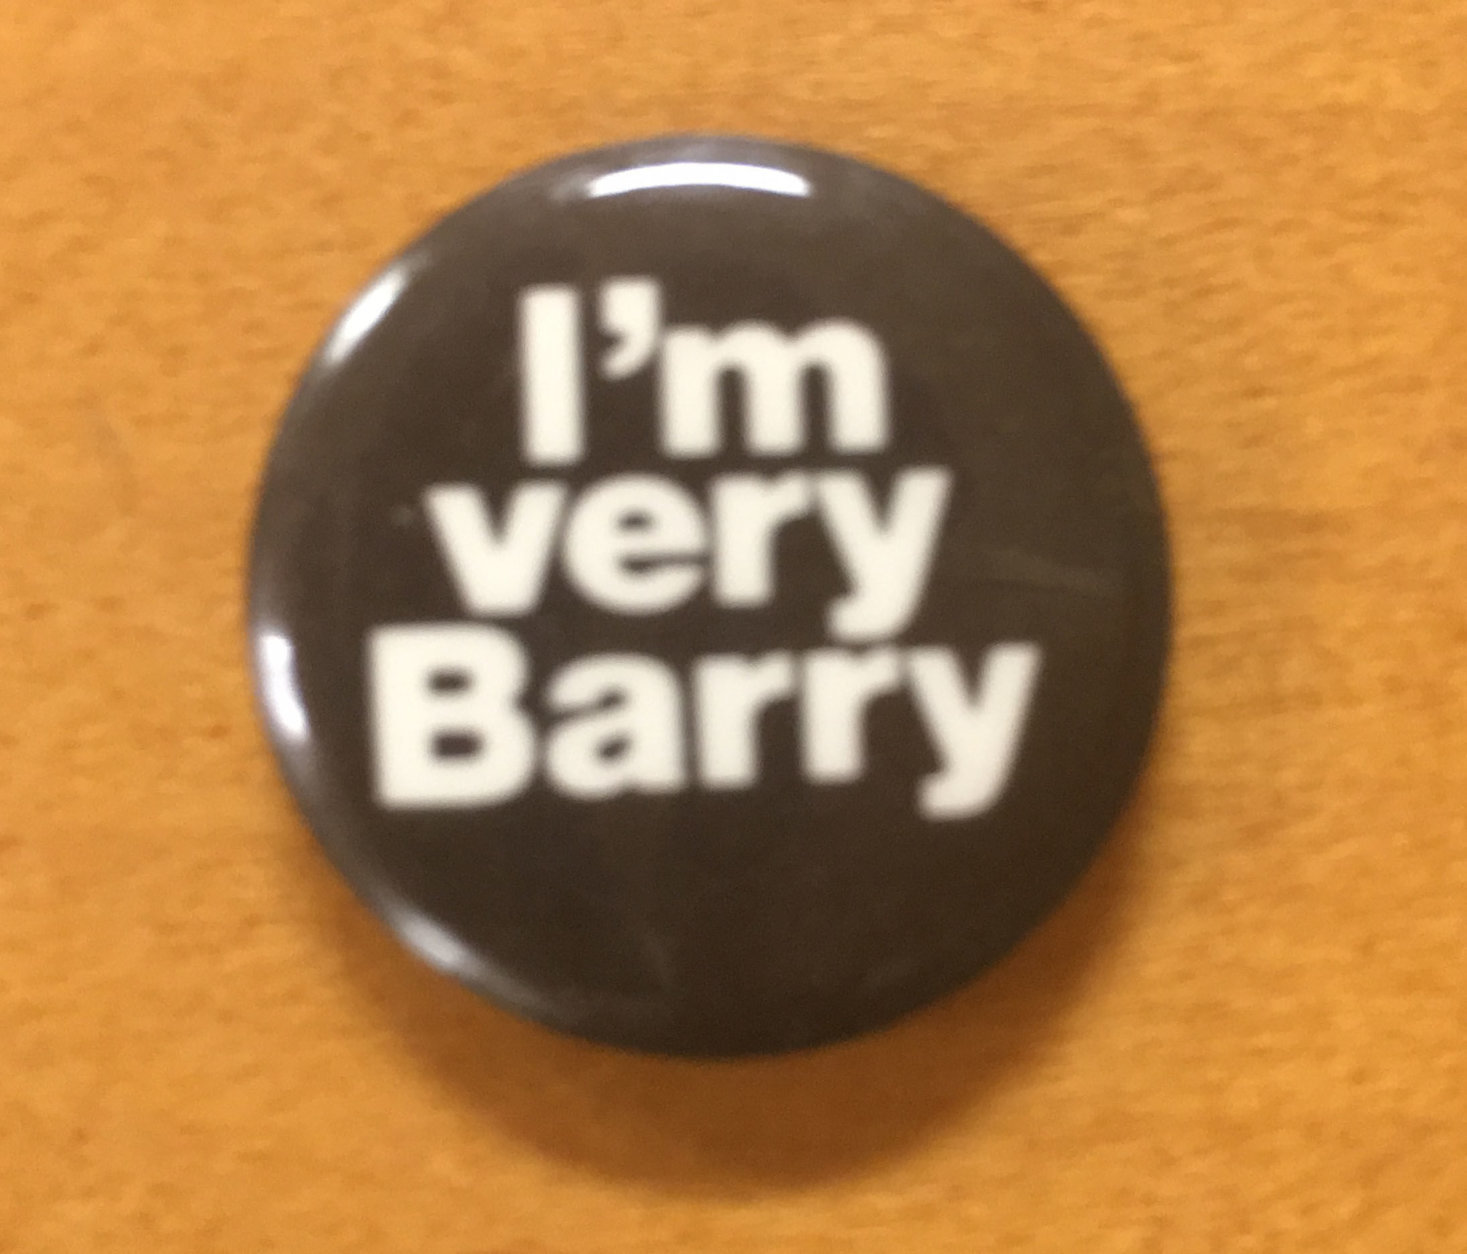 A campaign button at the Marion Barry 1978 Cmapaign Oral History Project, housed at the George Washington University's Gelman Library. (WTOP/Rick Massimo)